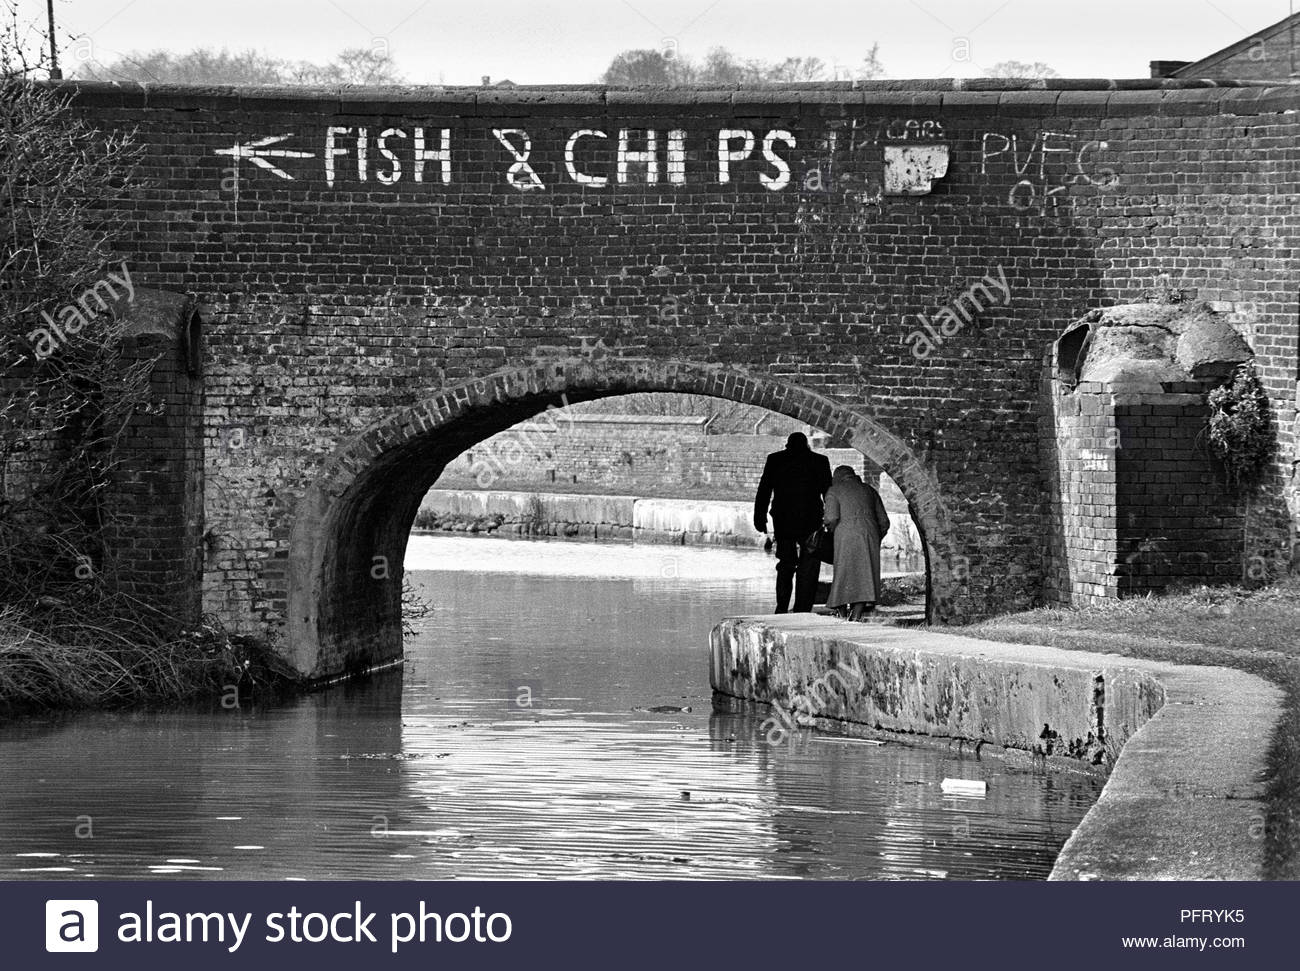 An old couple duck down to walk beneath a bridge on the towpath of the Caldon Canal in Stoke-on-Trent, Staffordshire, UK - Stock Image